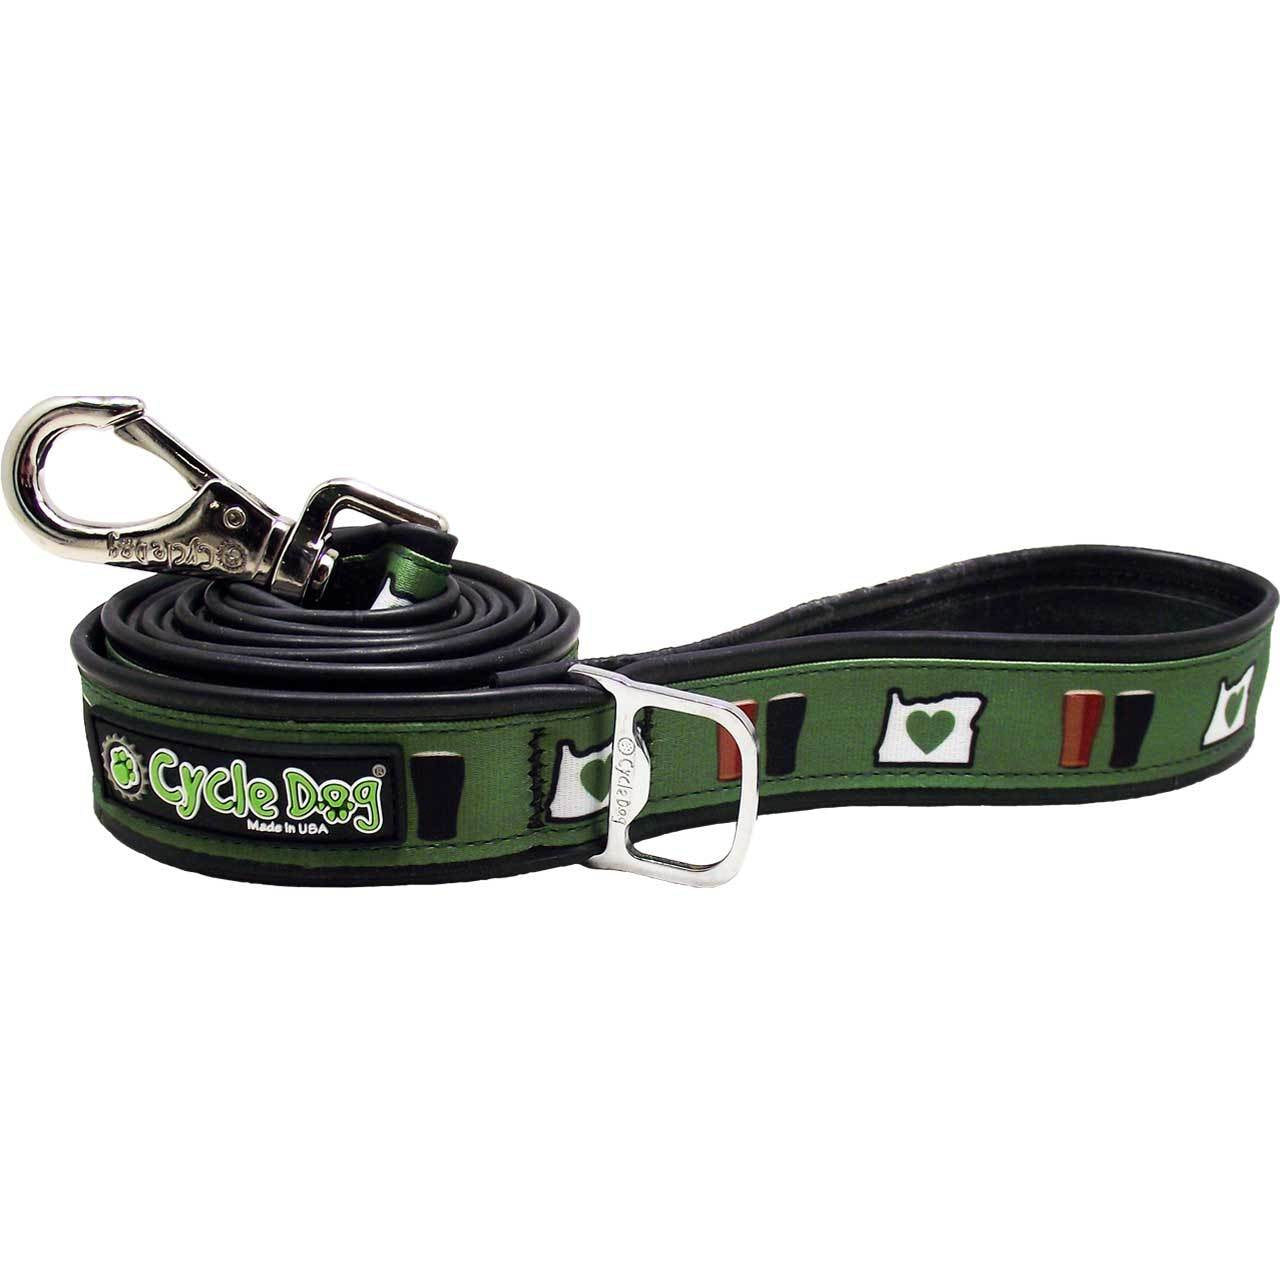 Cycle Dog Oregon Love Dog Leash